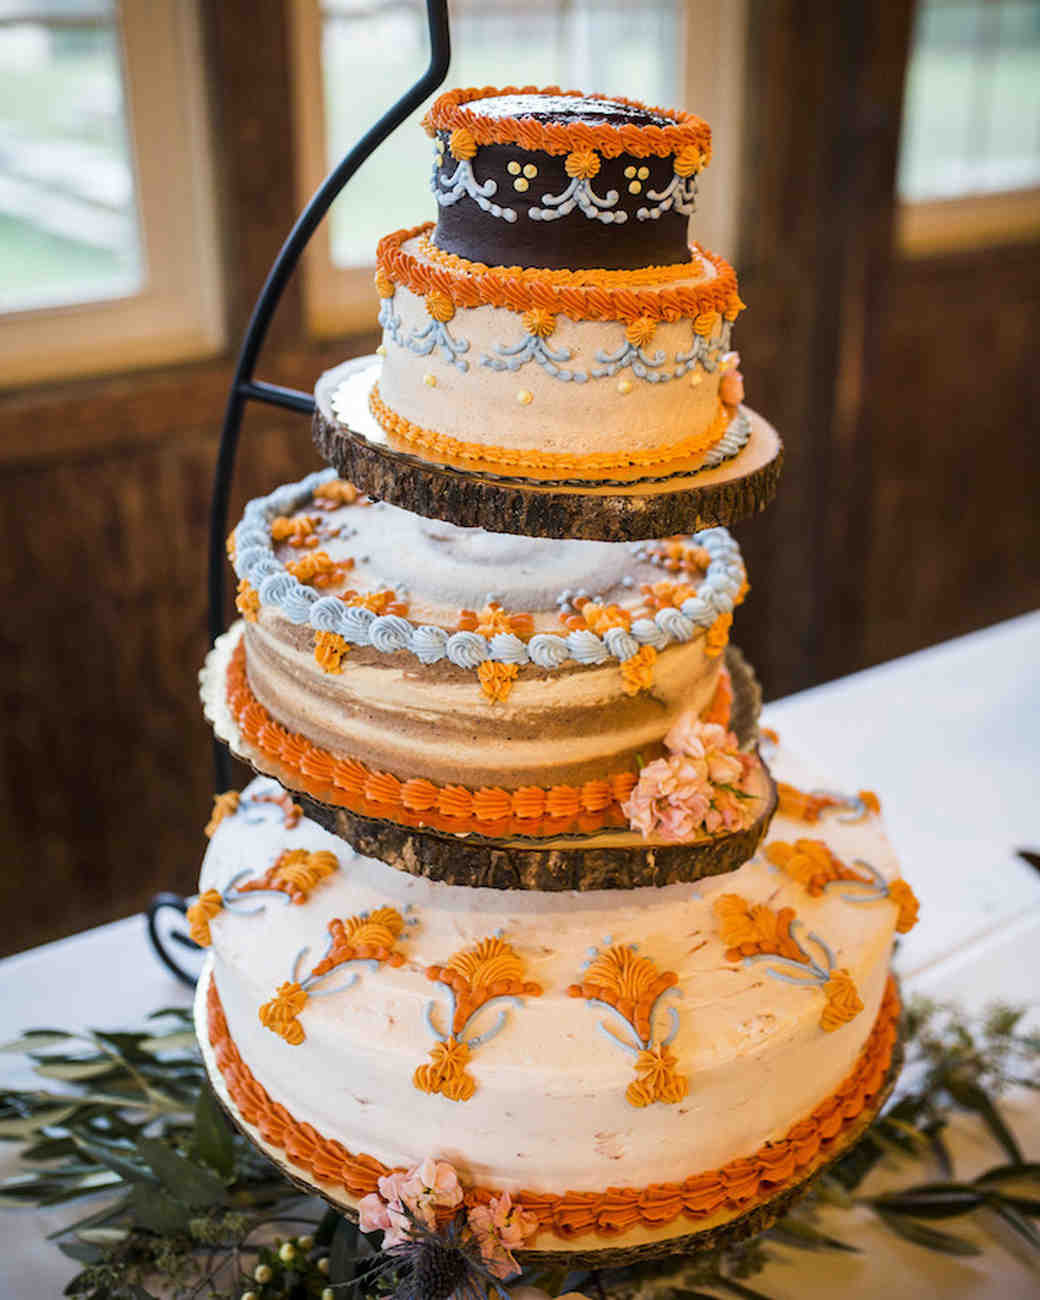 Delicious Wedding Cakes  7 Delicious Vegan Wedding Cakes